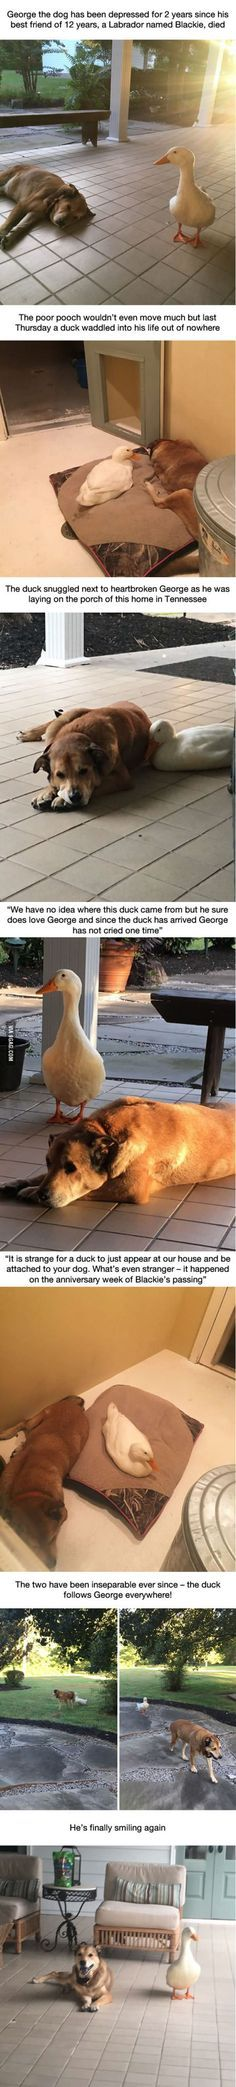 This dog was depressed for 2 years after his best friend died, but then this duck showed up